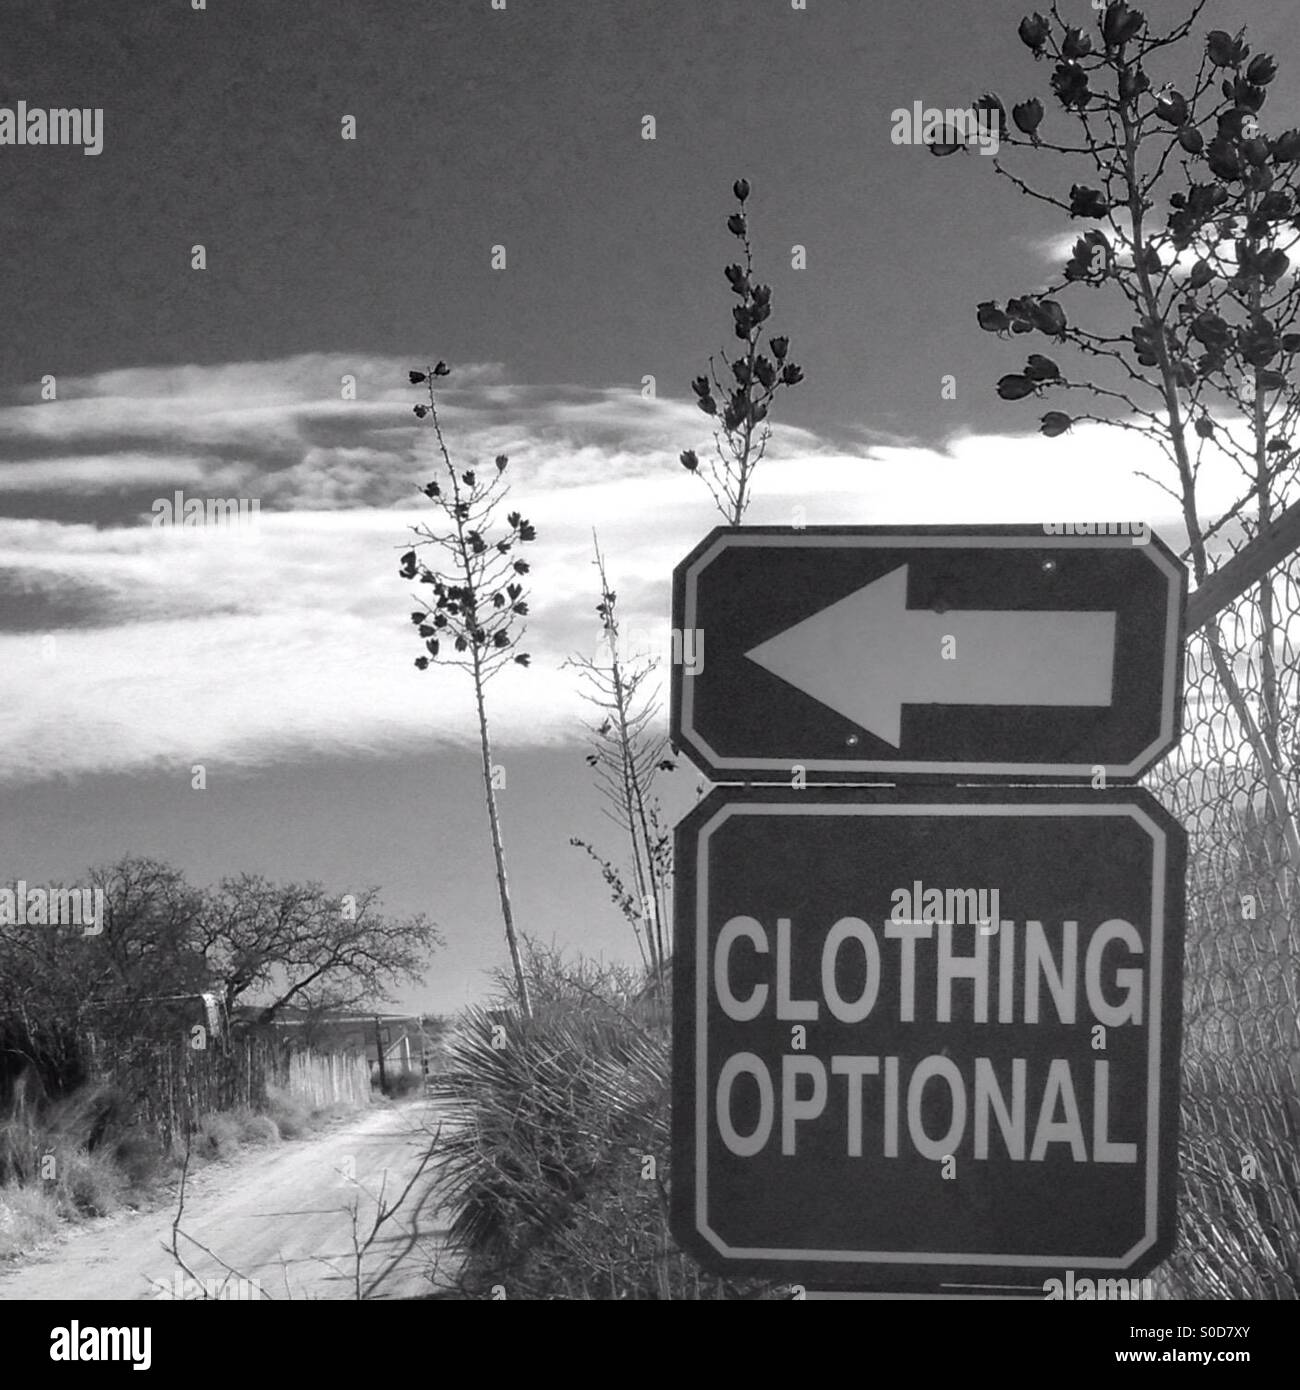 Clothing optional sign at hot springs - Stock Image